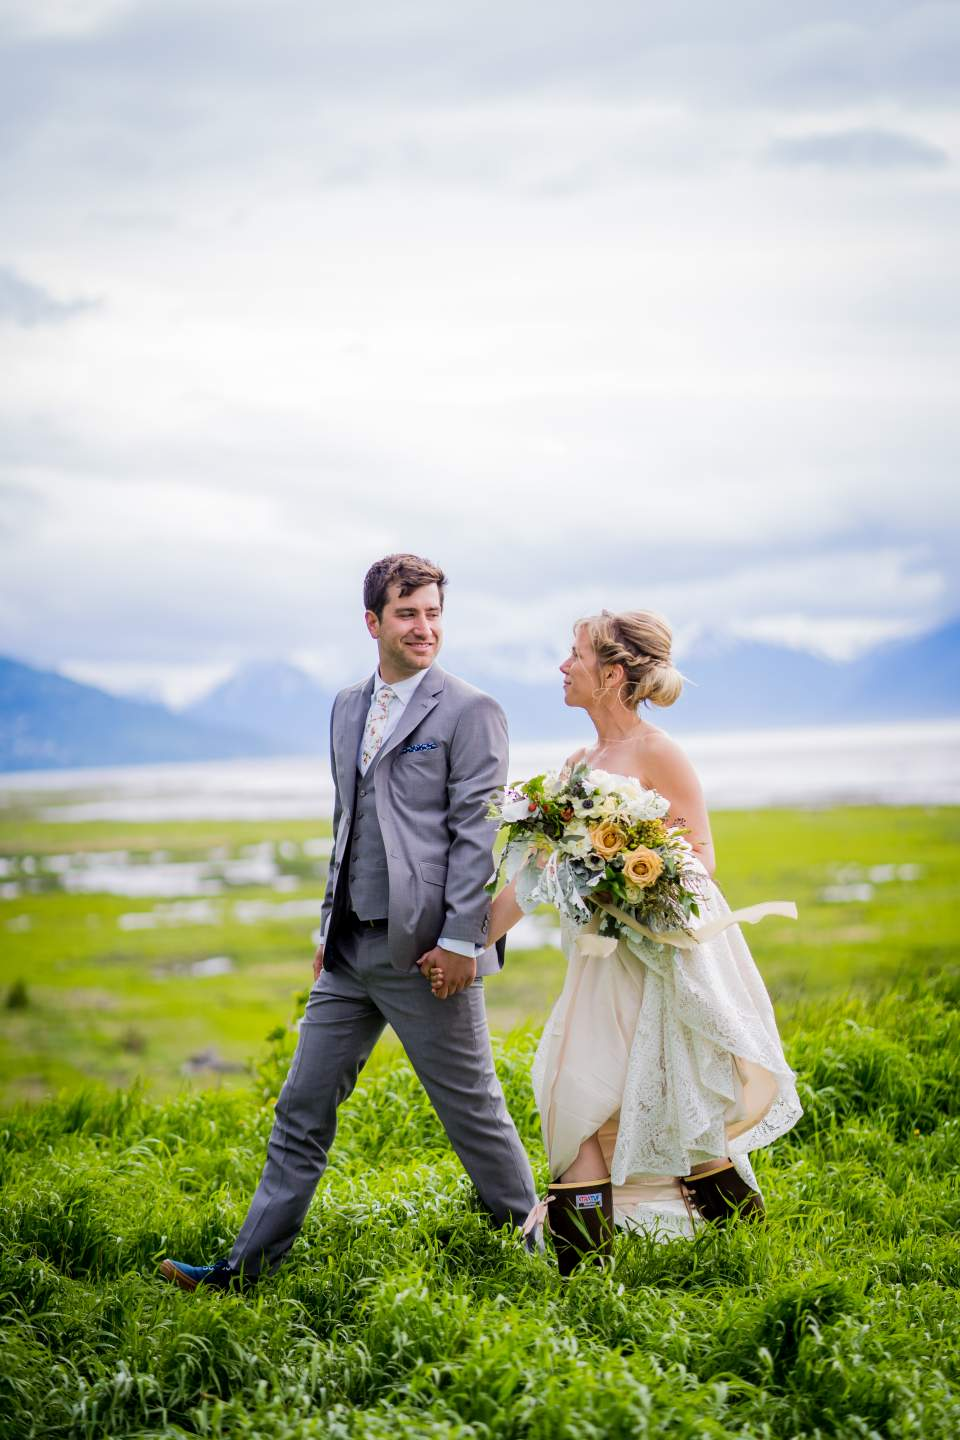 couple walking together anchorage alaska wedding